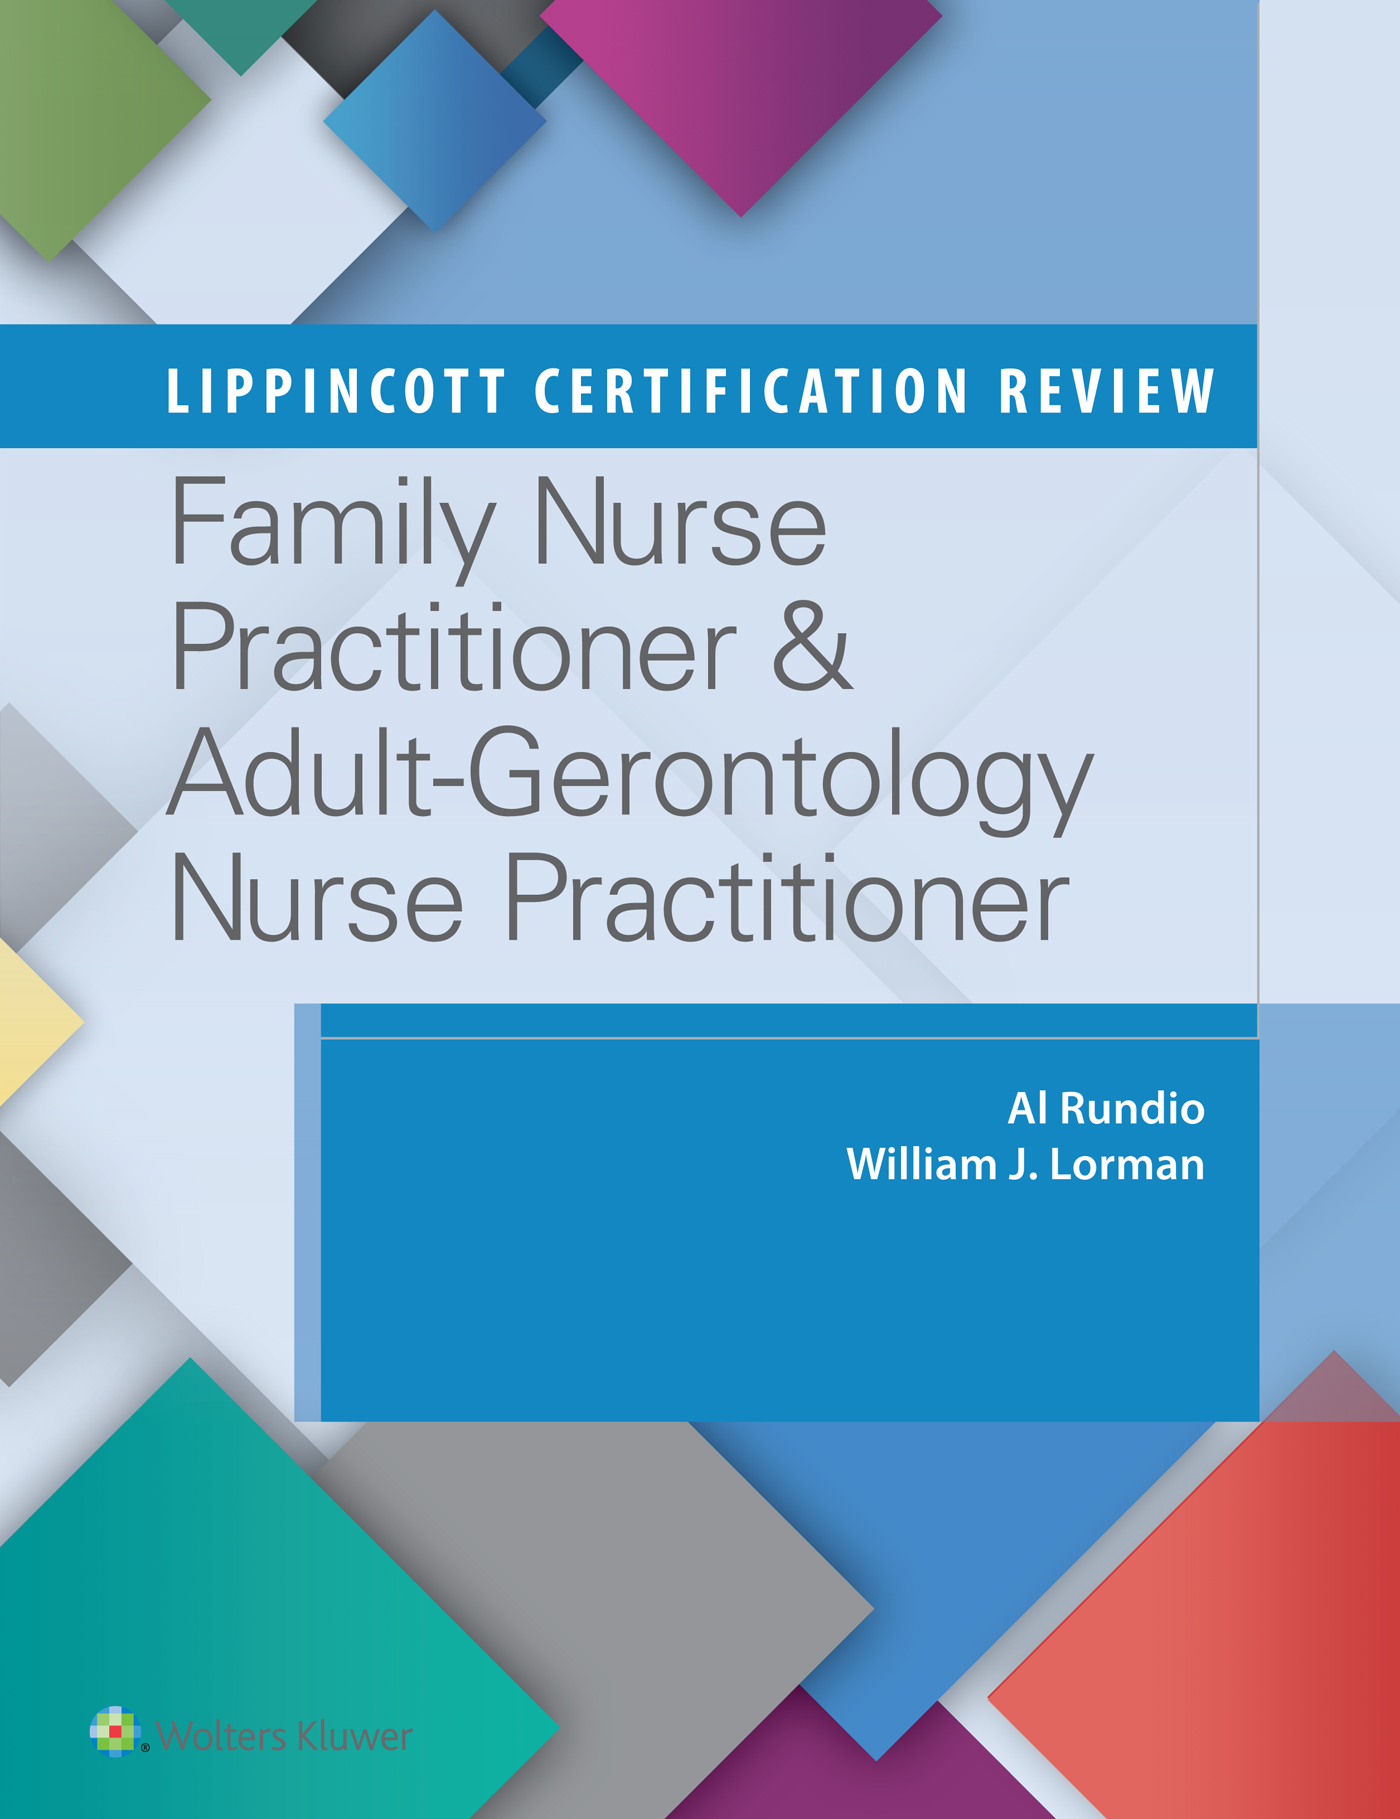 Lippincott certification review family nurse practitioner lippincott certification review family nurse practitioner adult gerontology nurse practitioner xflitez Choice Image